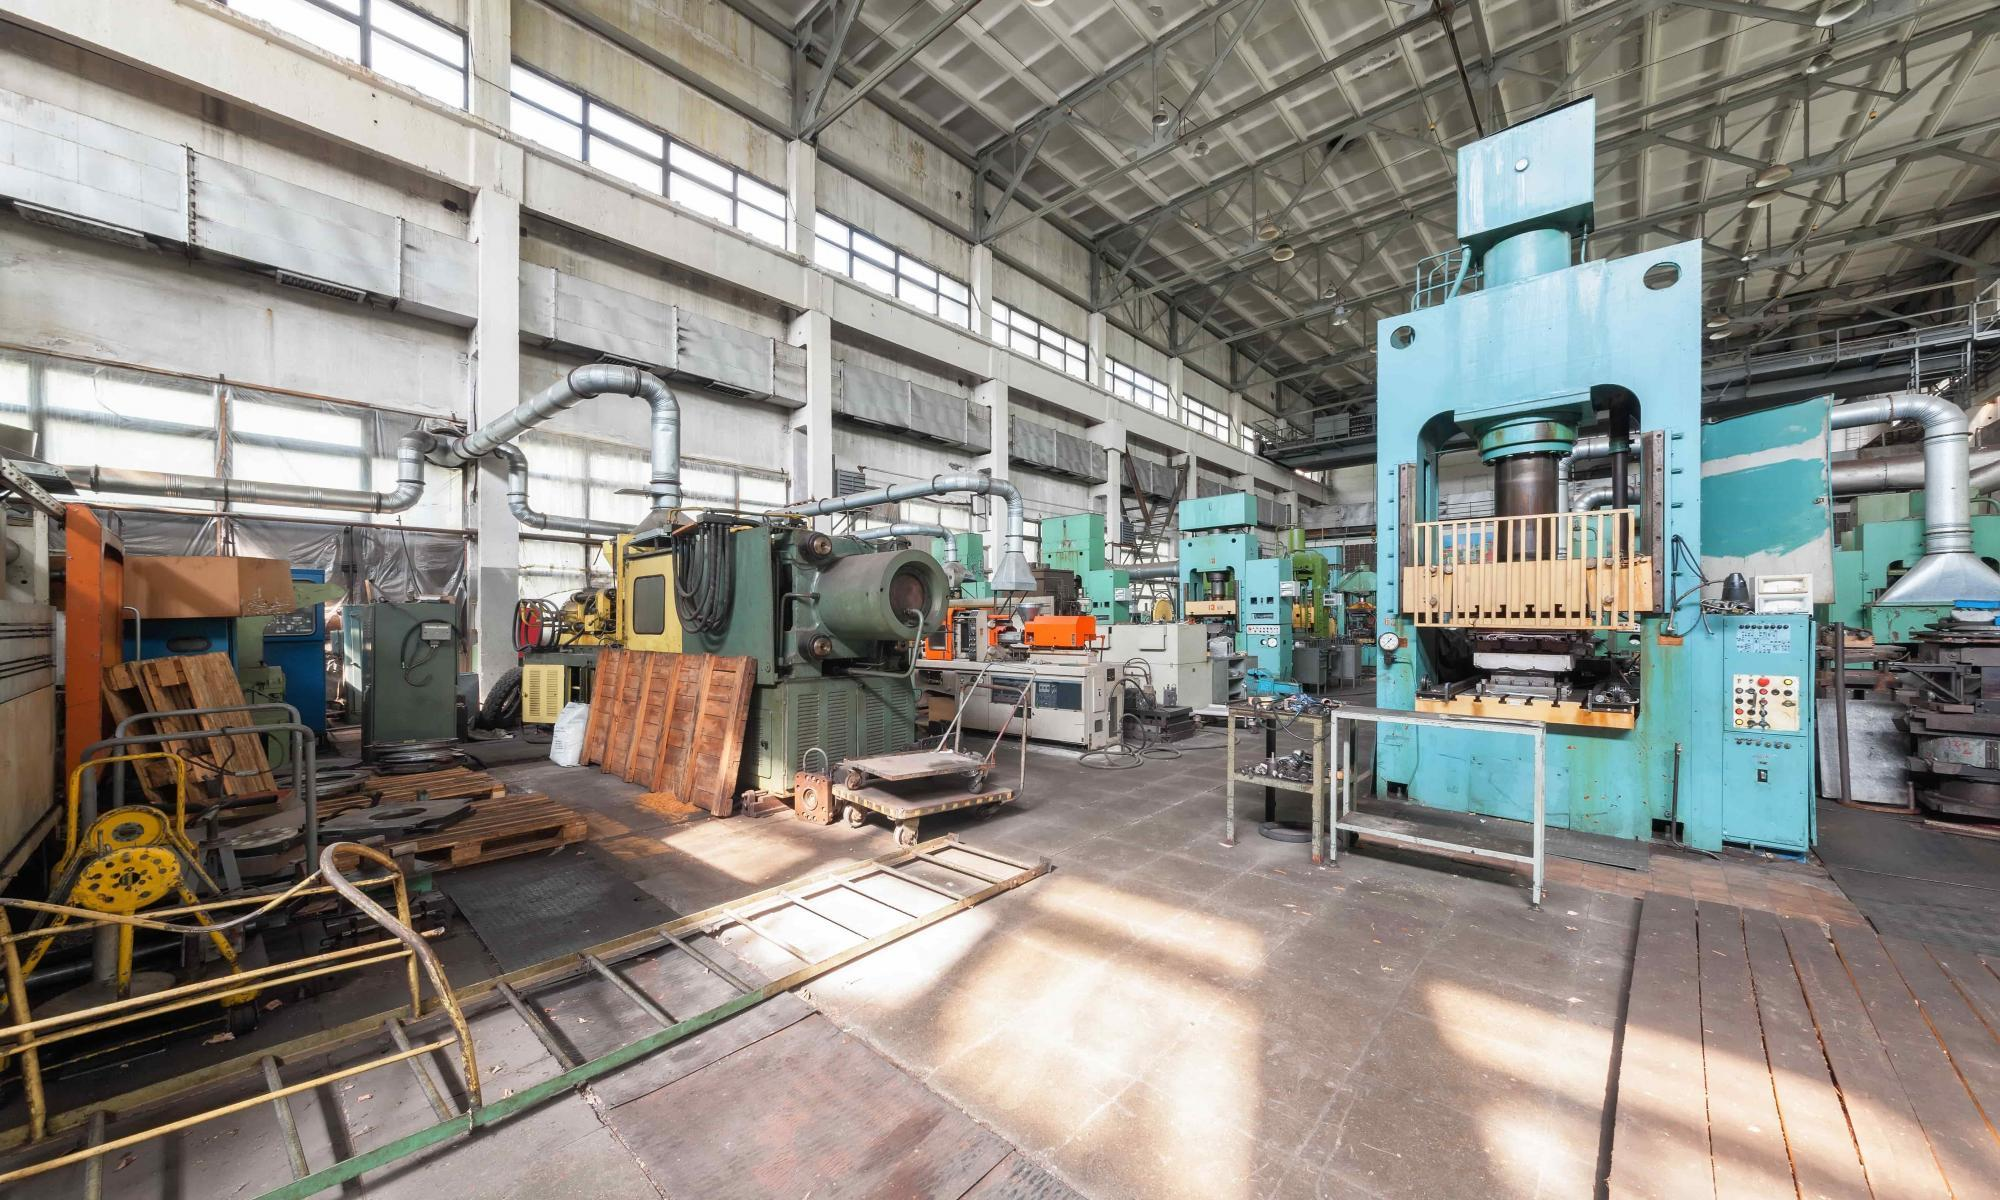 a-variety-of-machines-in-the-factory-P92A3JS-min